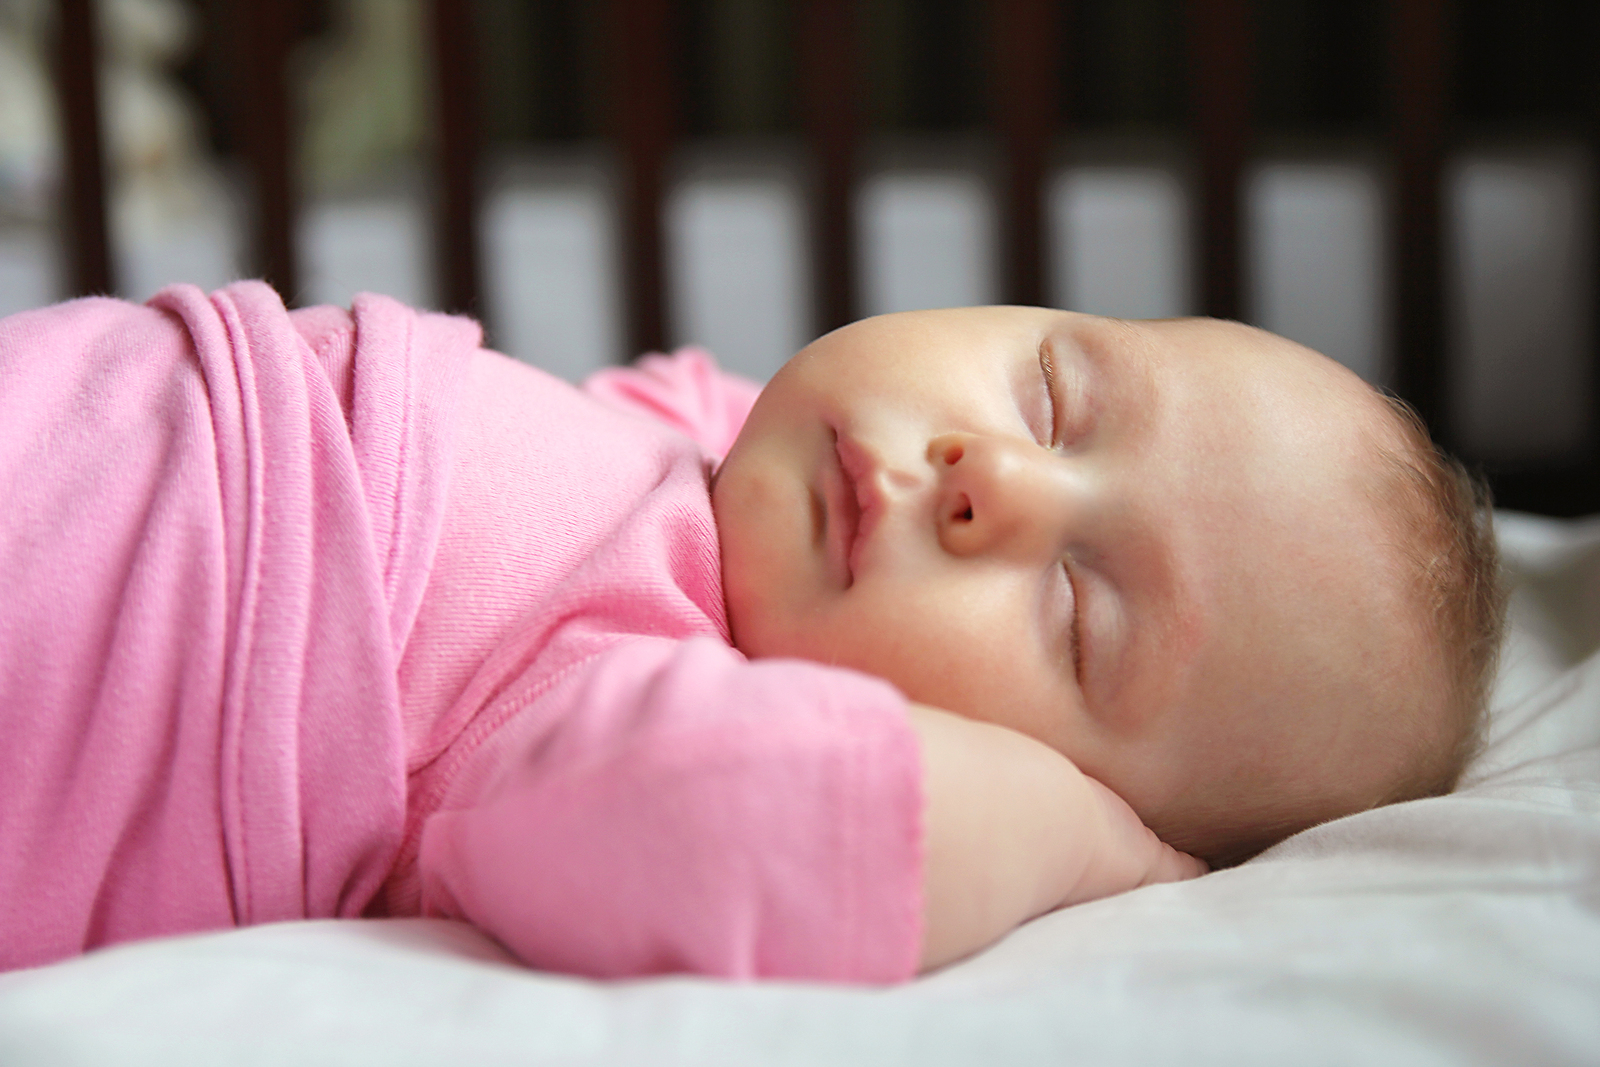 A little more than 40% of mothers report putting babies to sleep on their backs, as is recommended for safe sleeping.